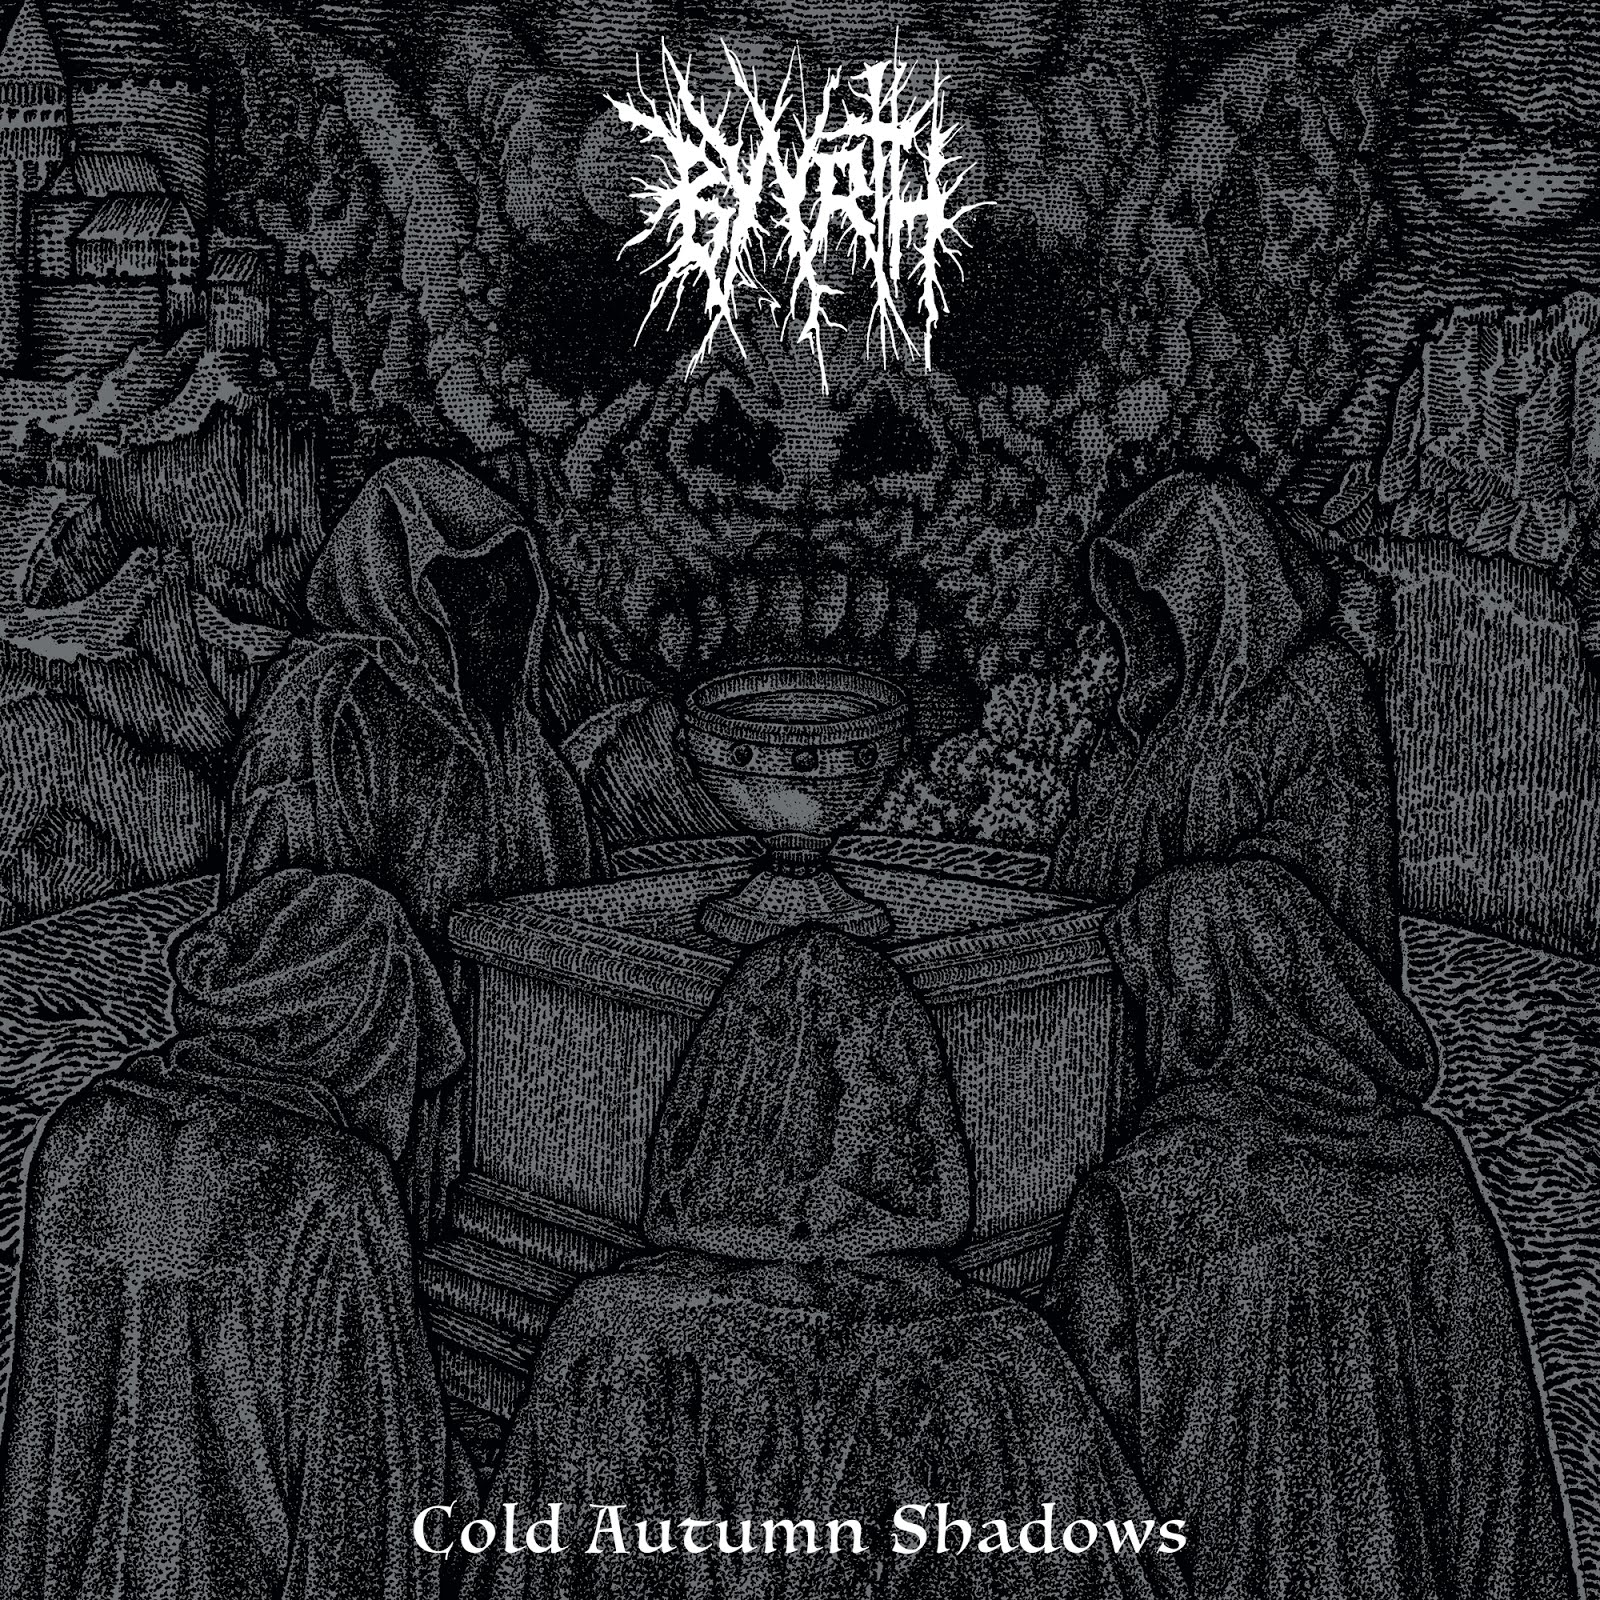 Byyrth - Cold Autumn Shadows MLP - Press Release + Track Stream.